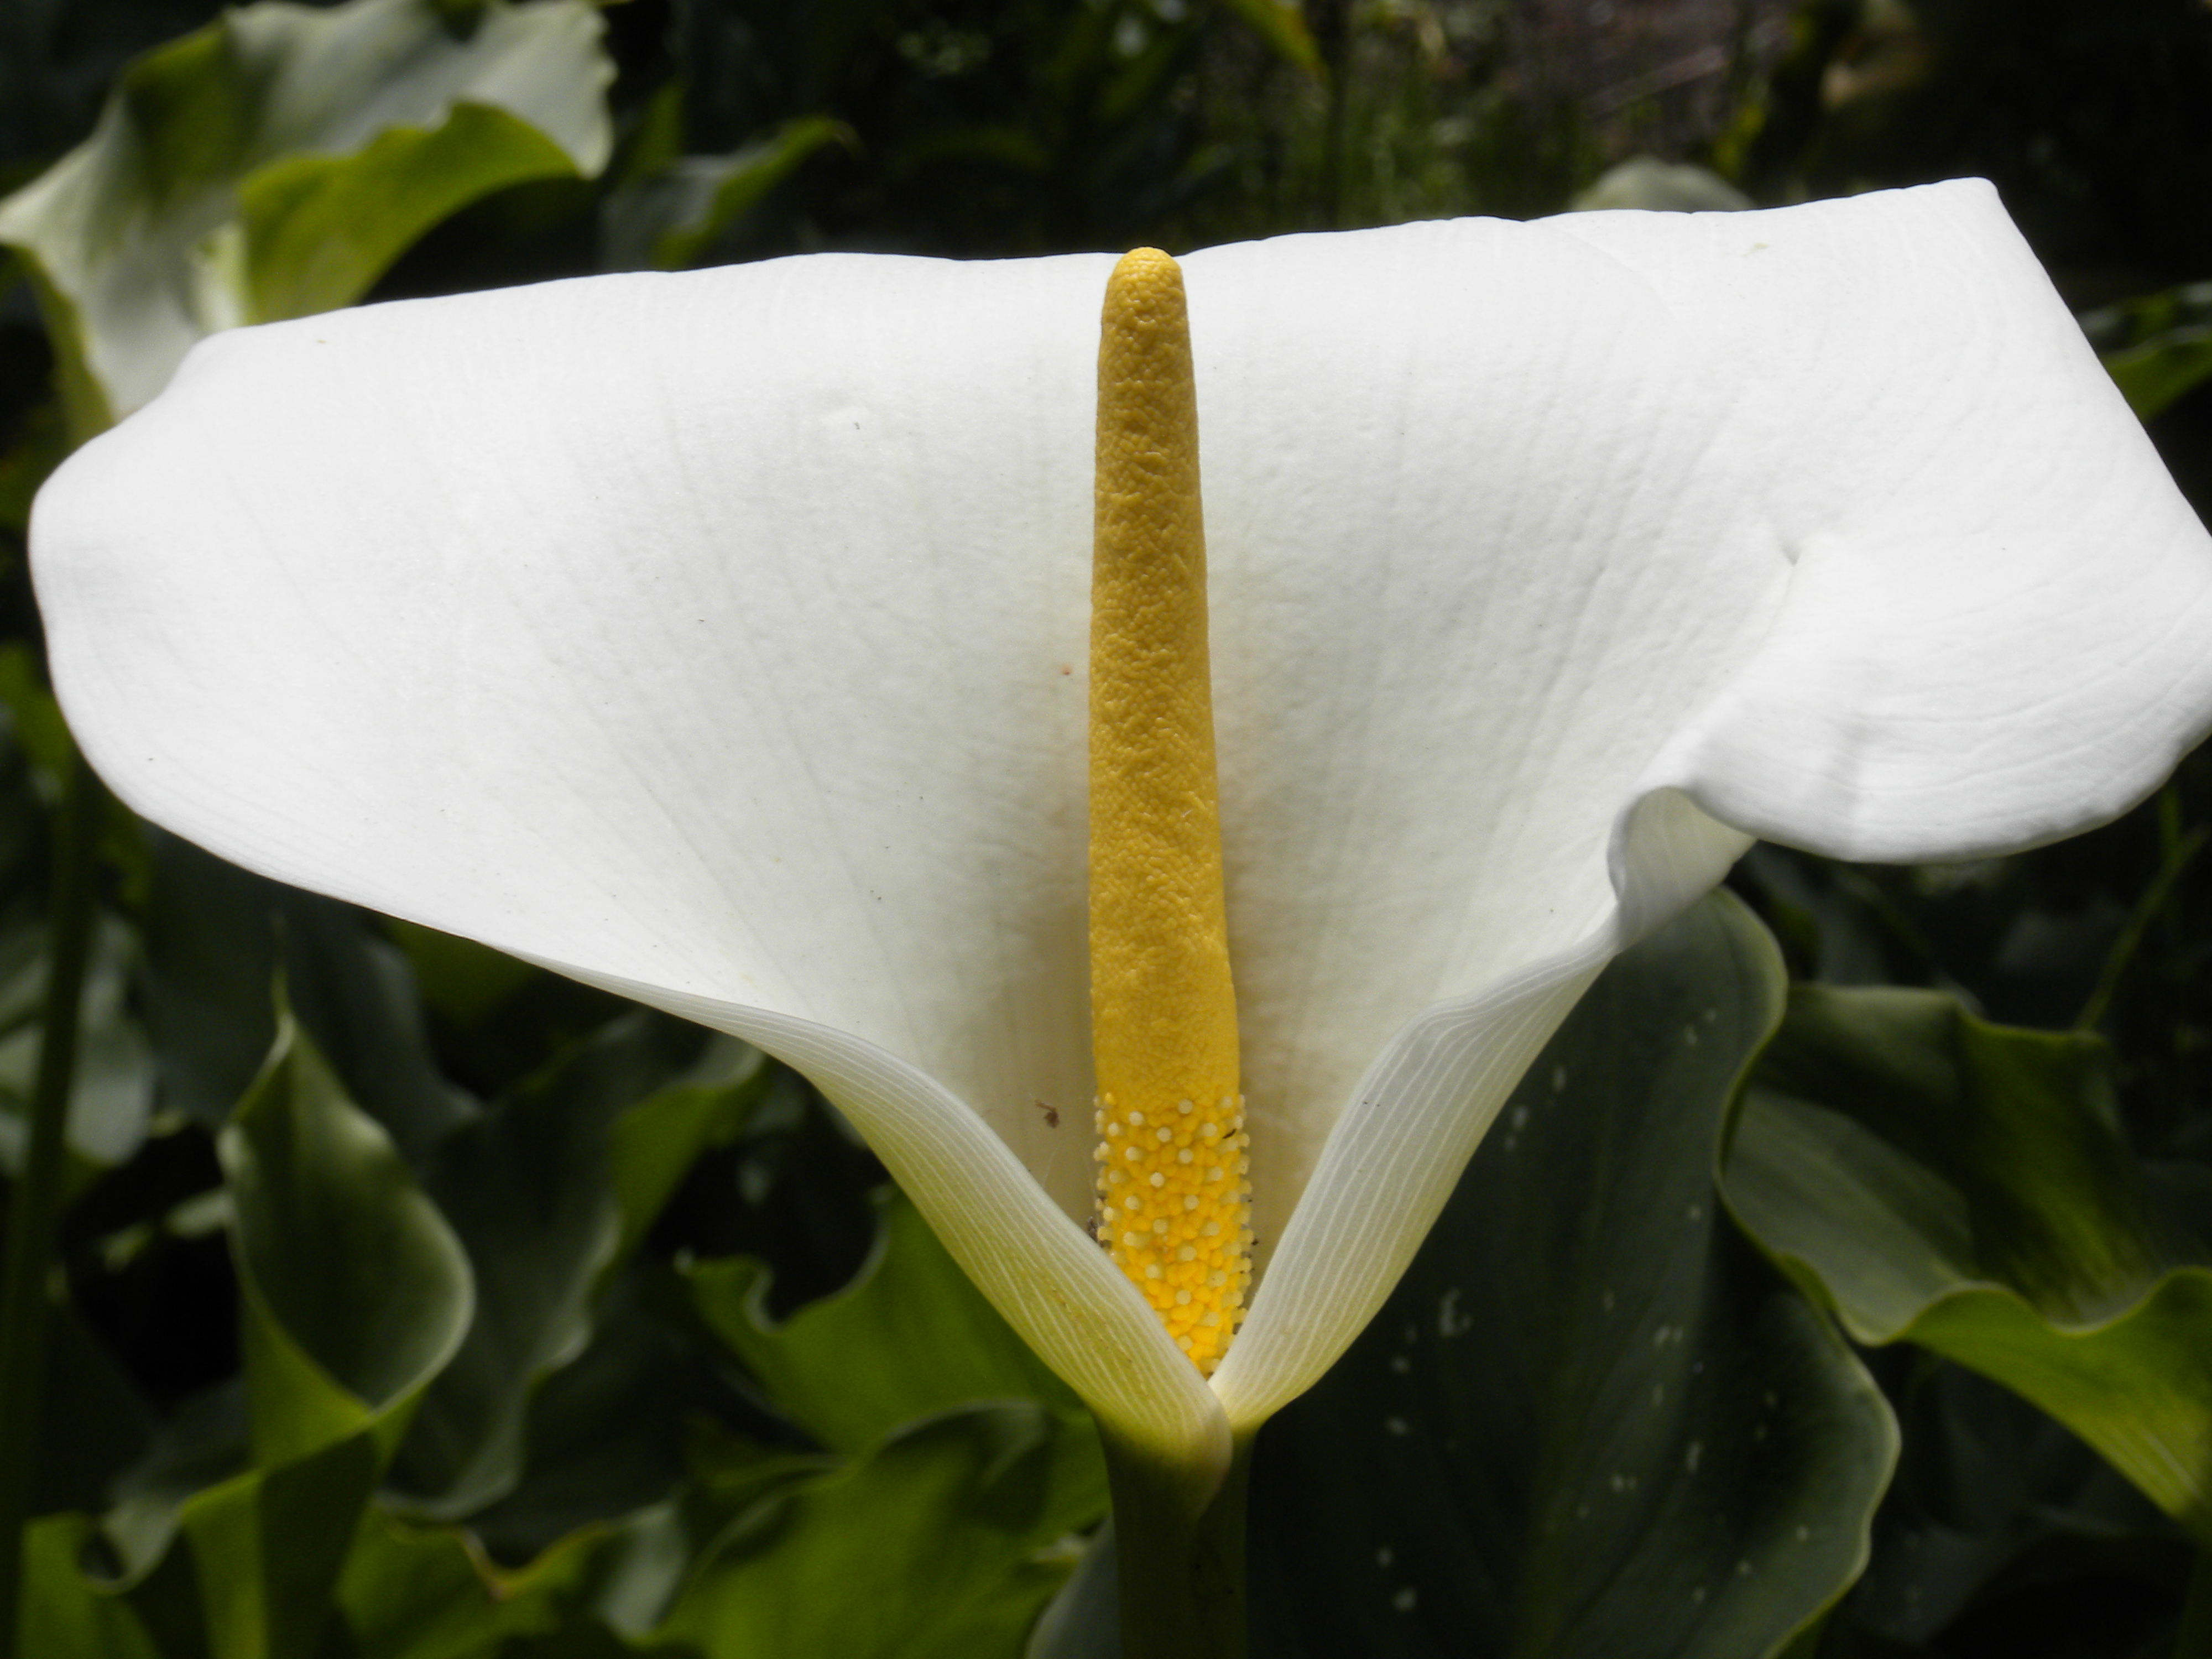 White_and_yellow_flower.JPG (4000×3000)